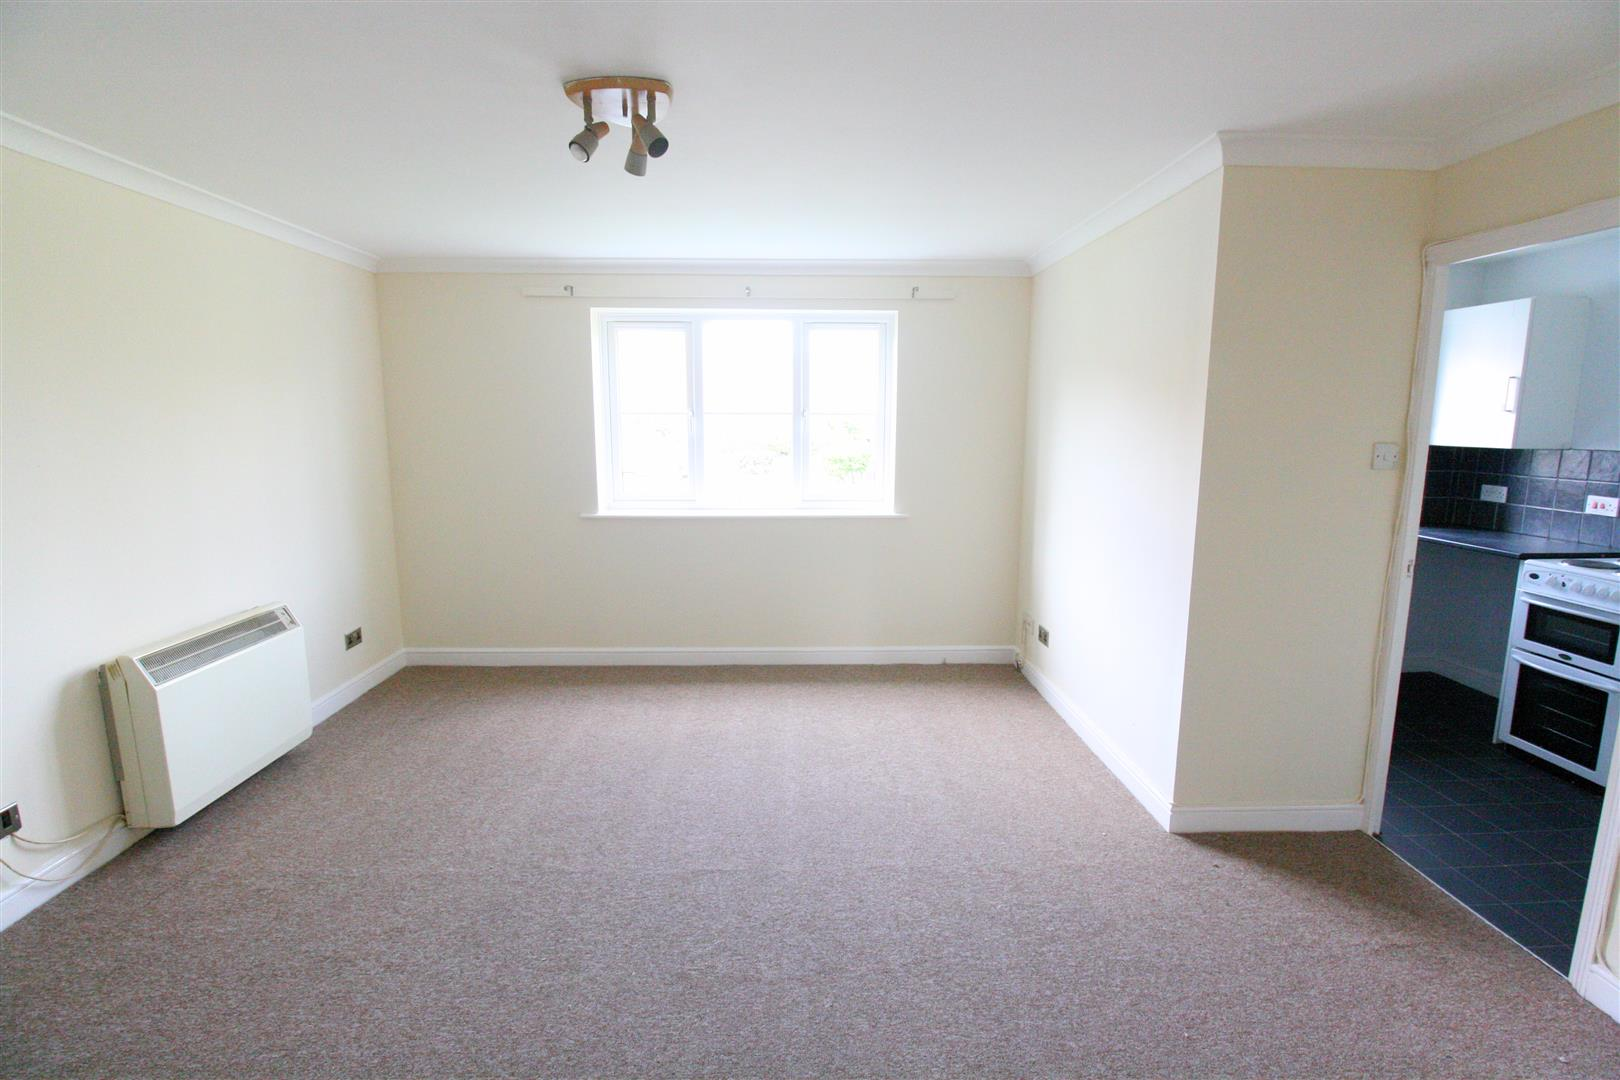 2 bed flat to rent in Phillips Close, Carshalton 5